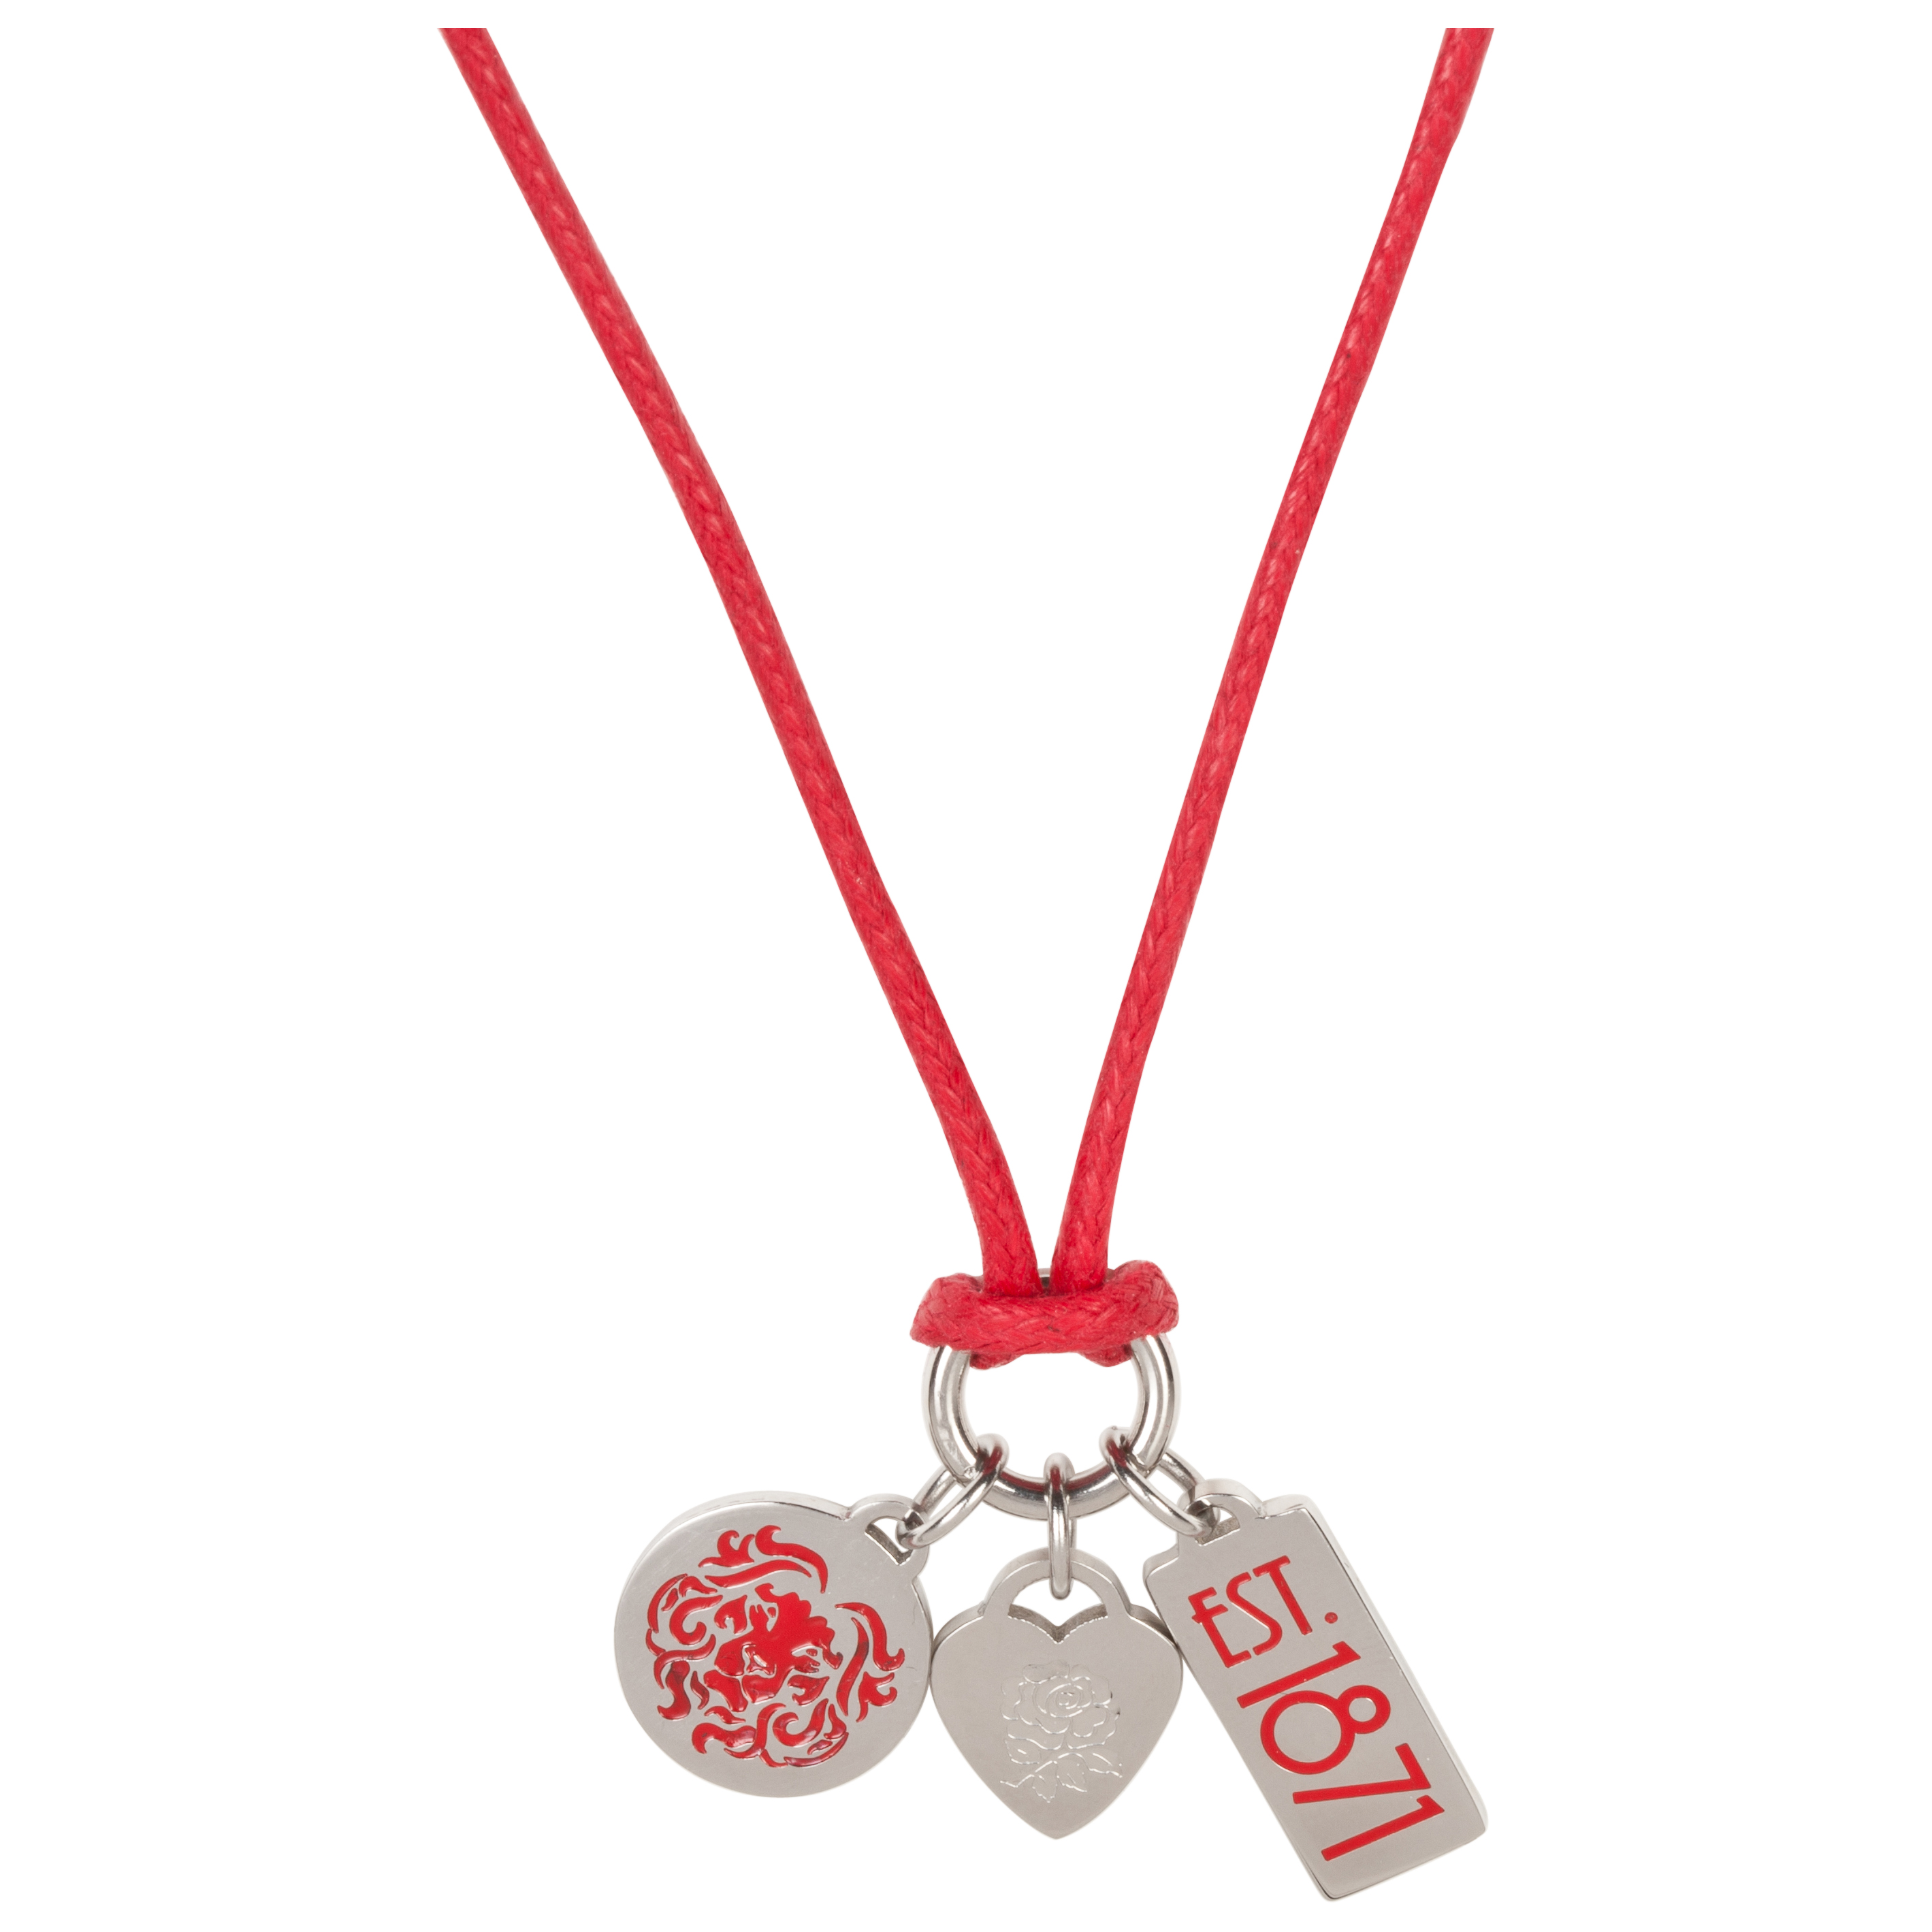 England Rugby Rose Charm Necklace - Red/Silver